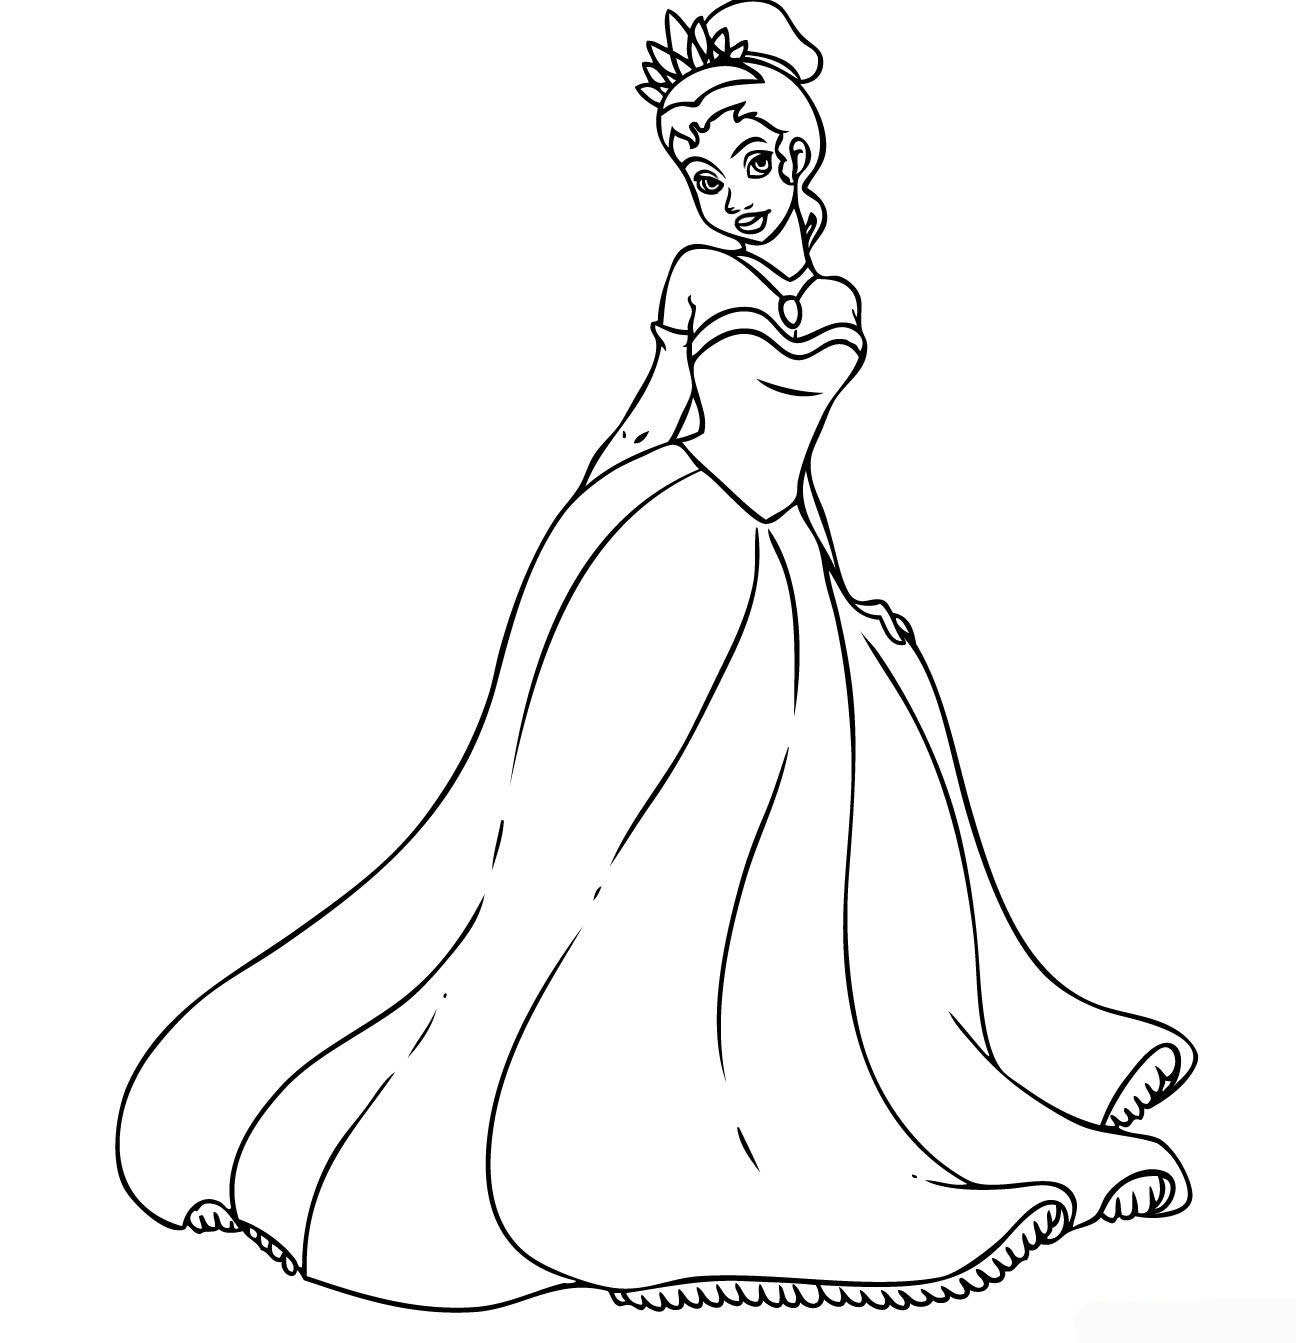 Disney Princess Drawing at GetDrawings.com | Free for personal use ...